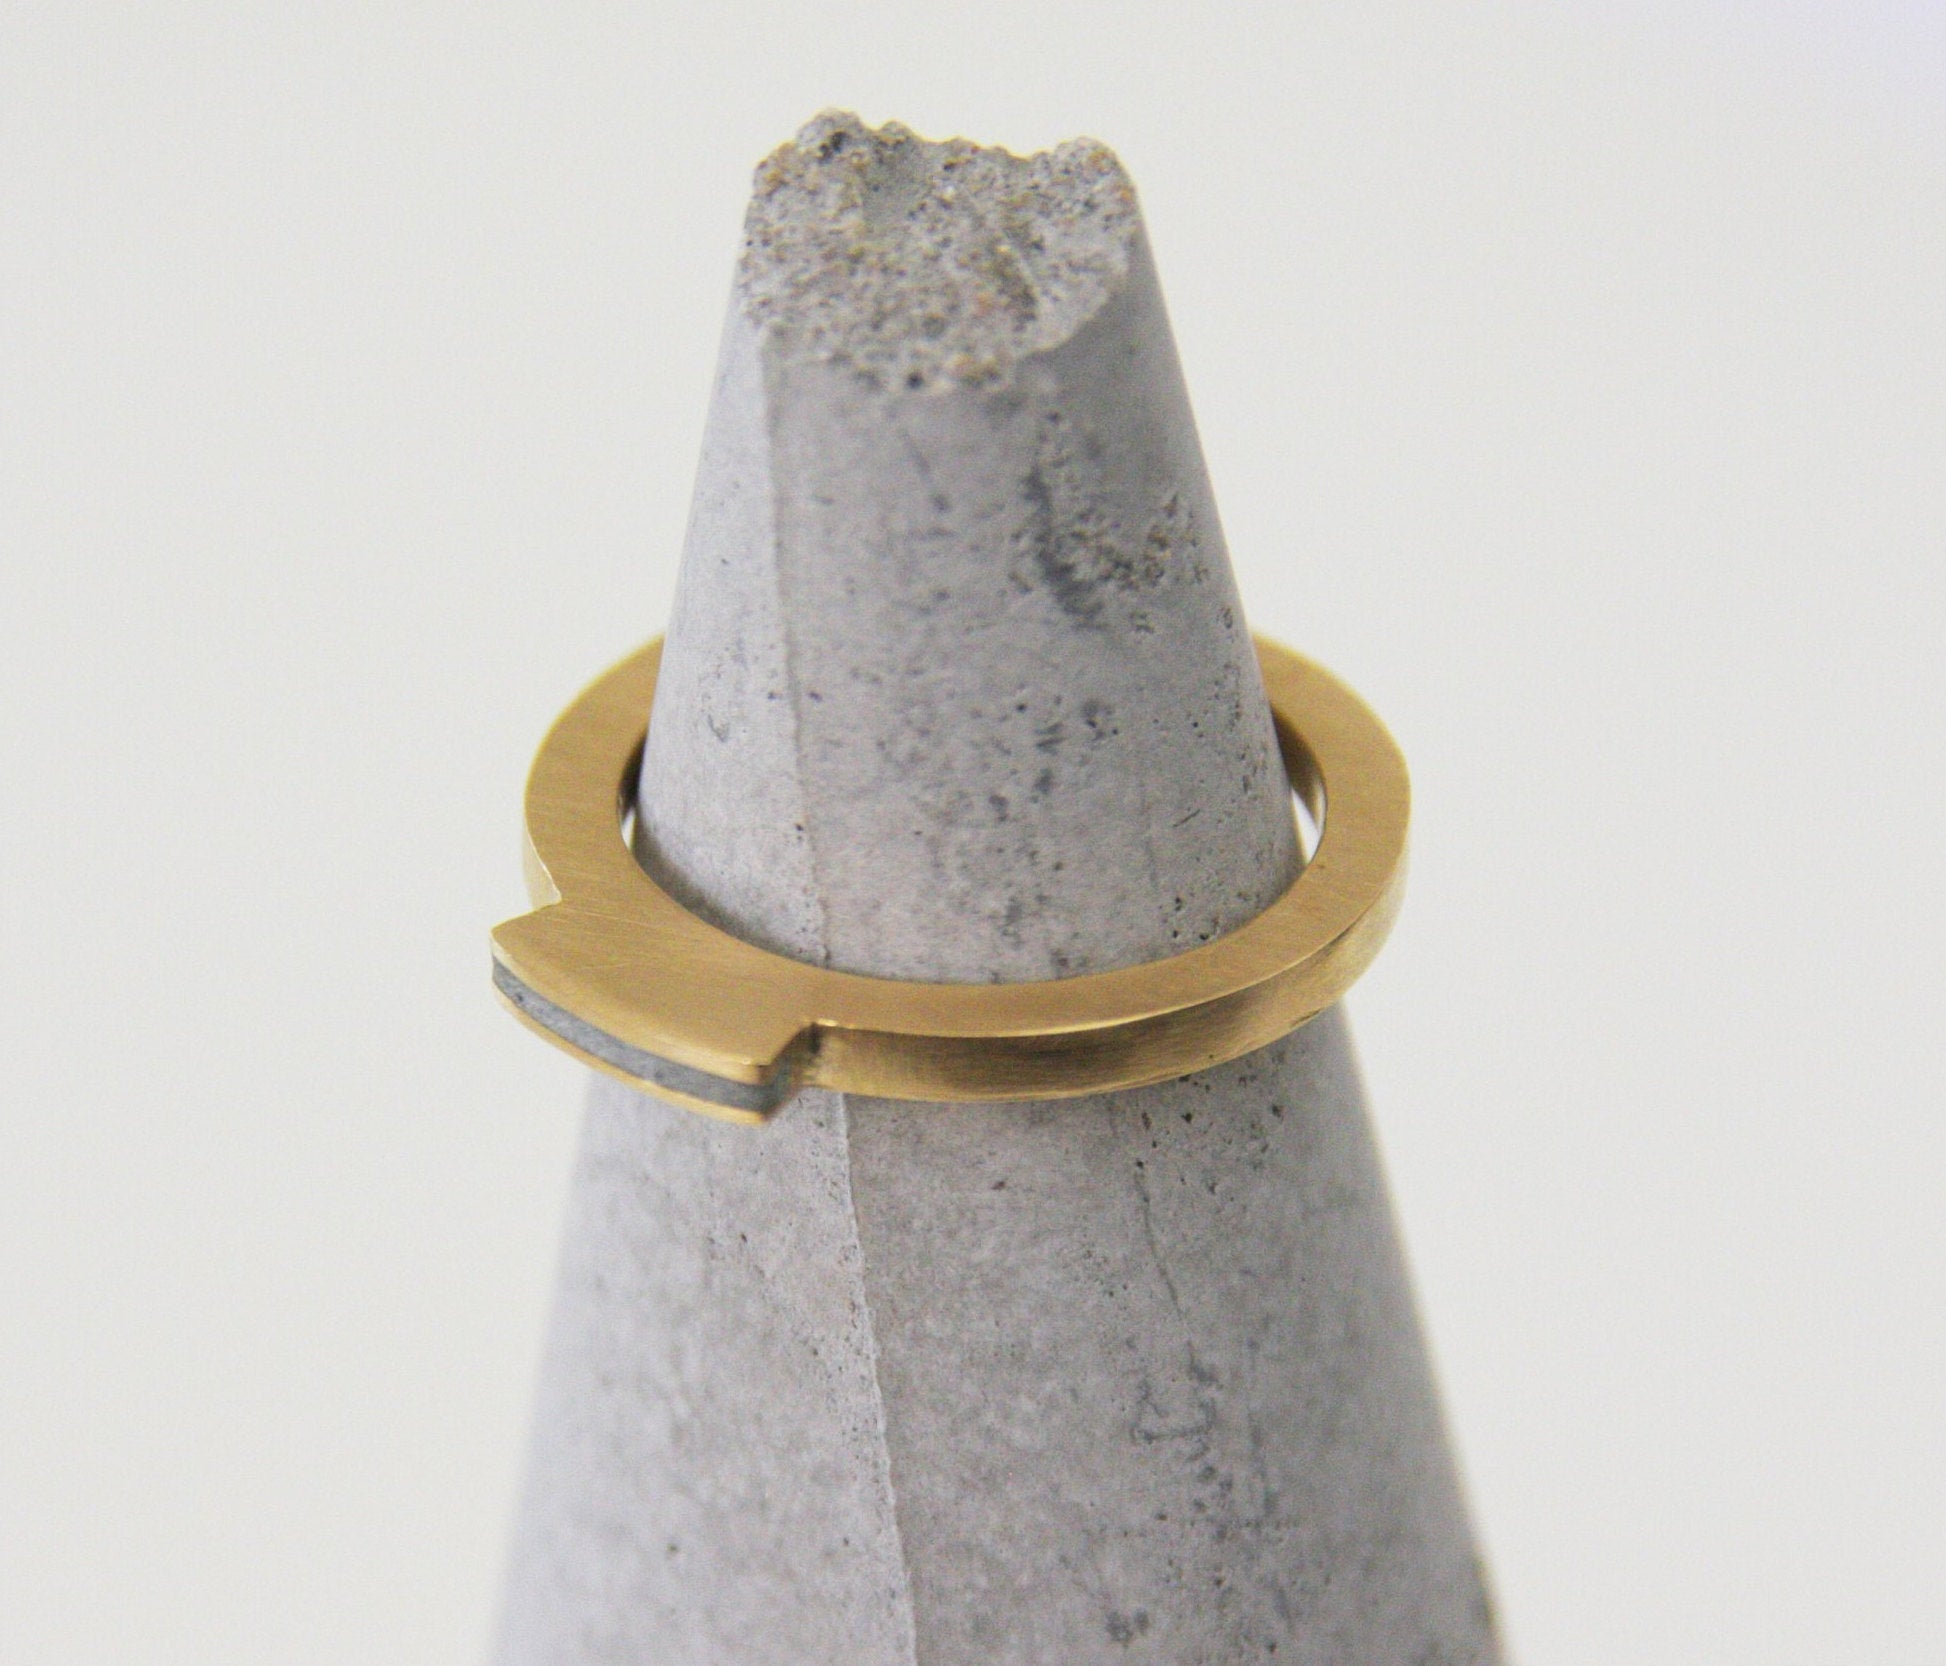 Gold And Concrete Modern Band, 2 mm Gold Ring, Flat Top Concrete Ring - hs